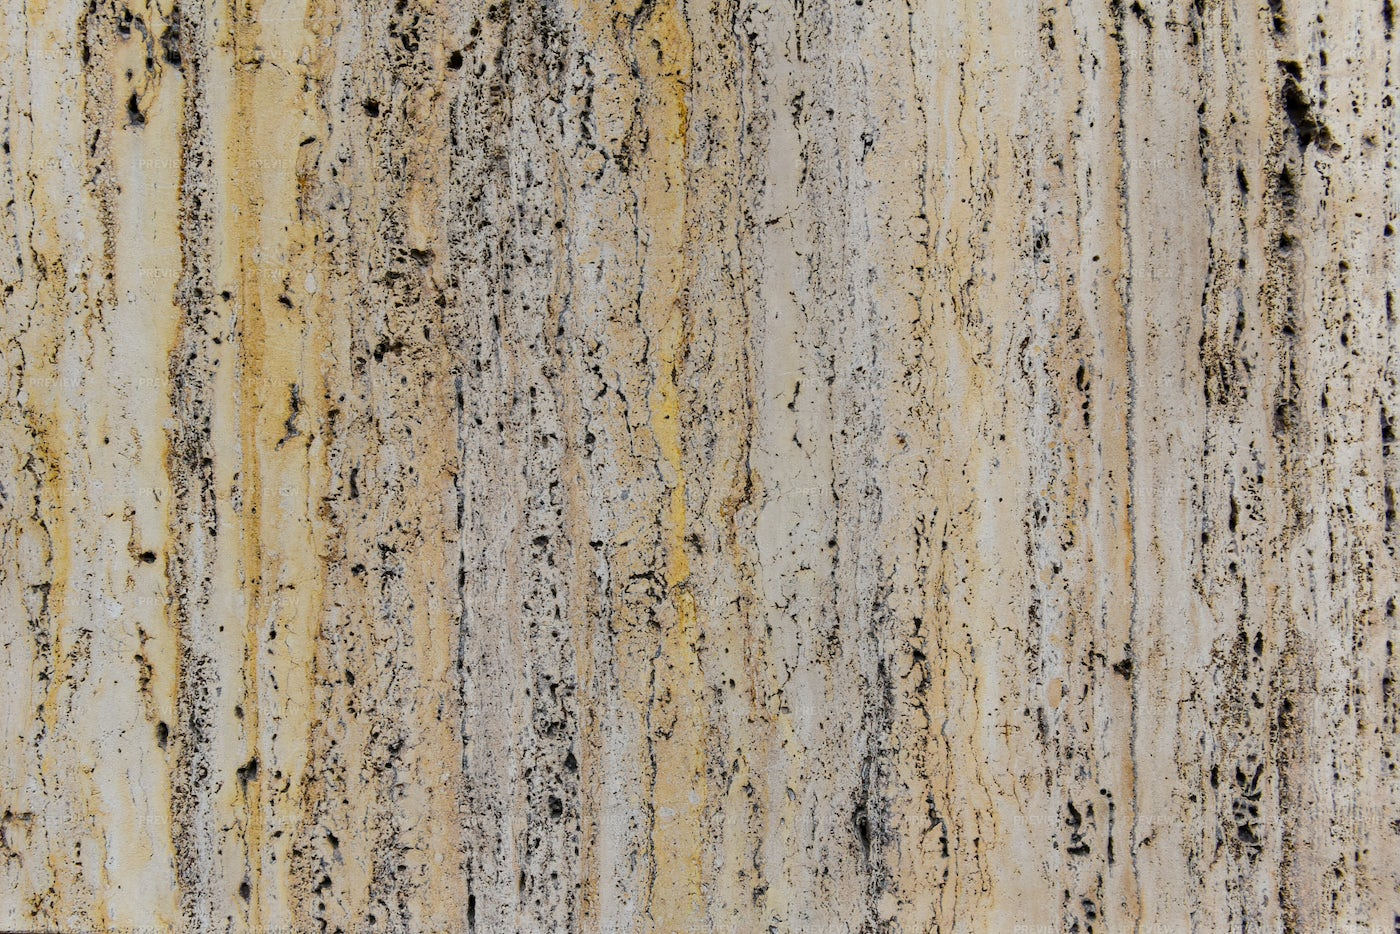 Scratched Rusty Grunge Background: Stock Photos